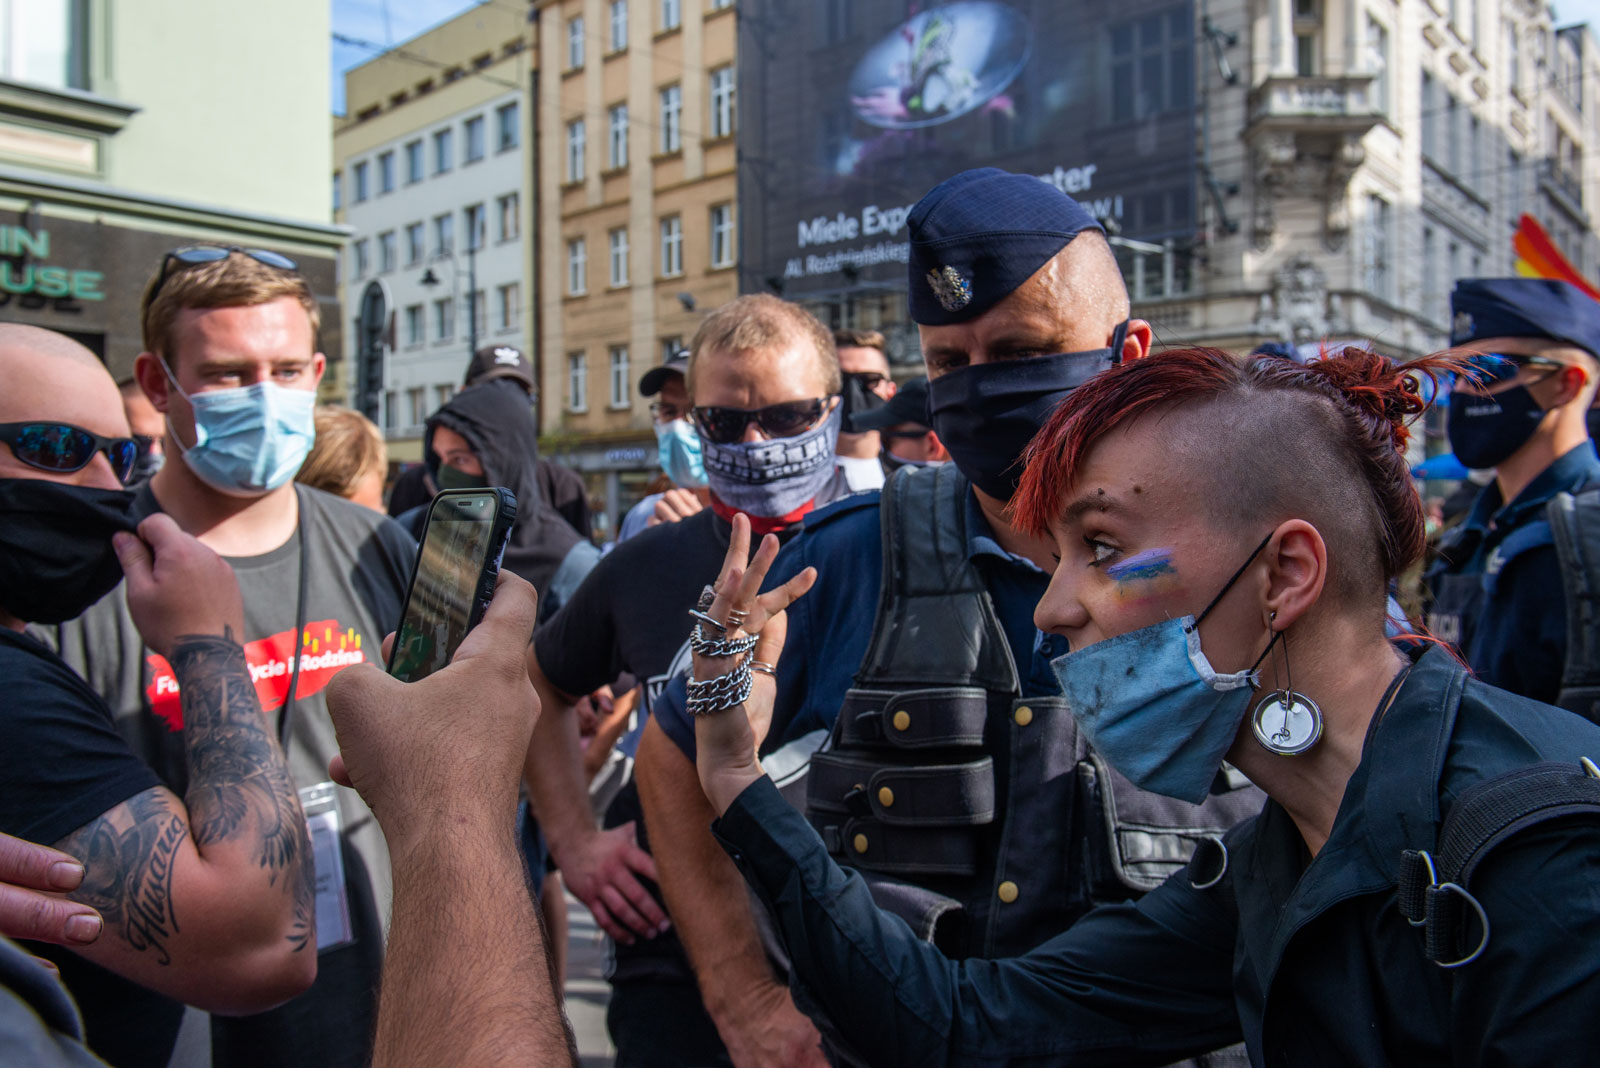 17 - In Poland's 'LGBT-free zones,' existing is an act of defiance -